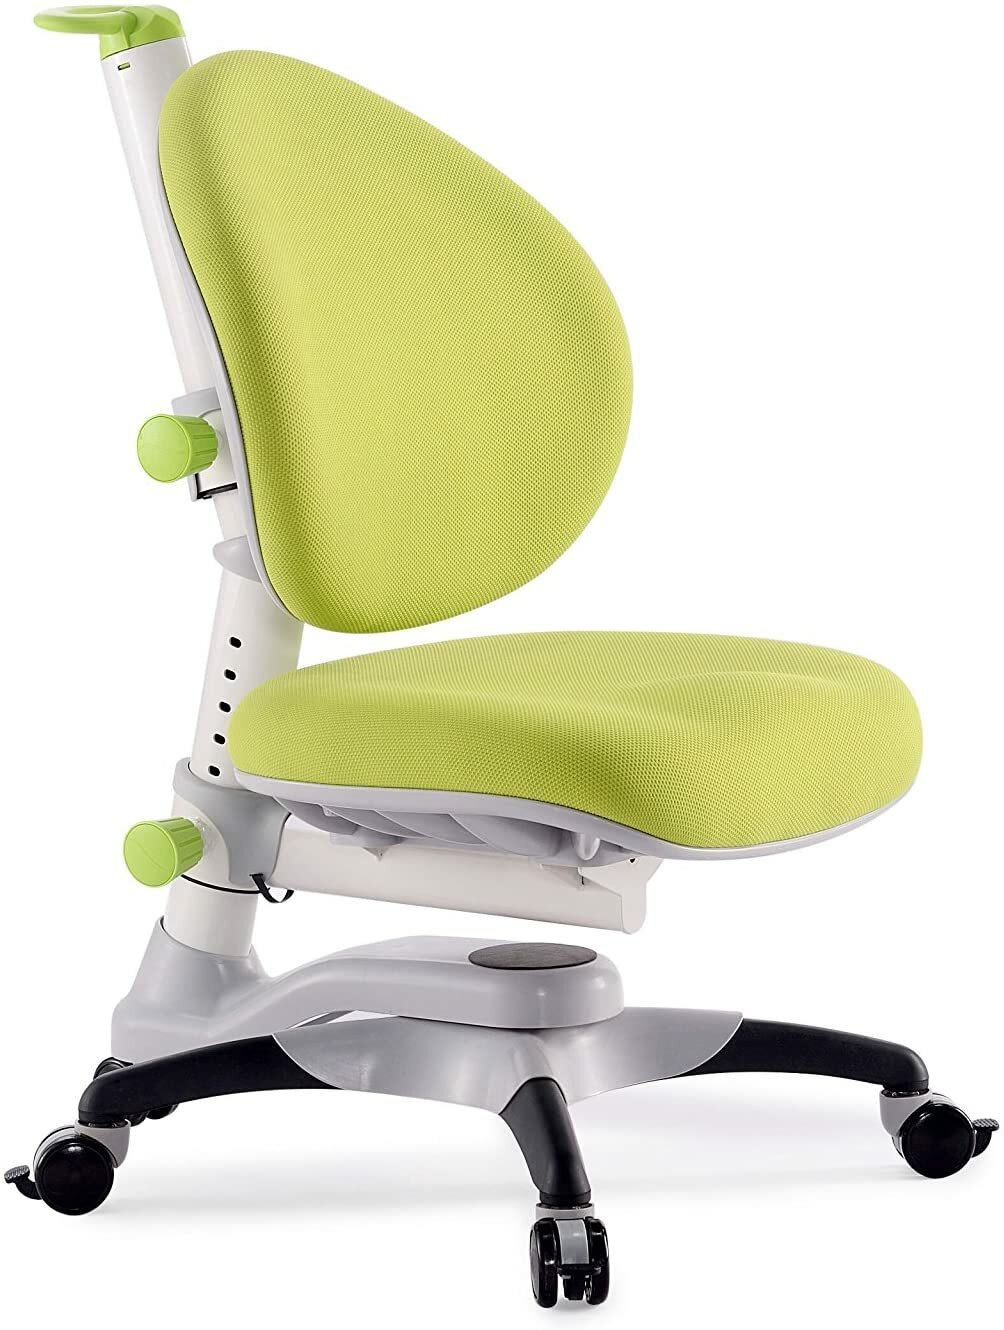 Apexdesk Little Soleil Children S Desk Chair Reviews Wayfair Ca